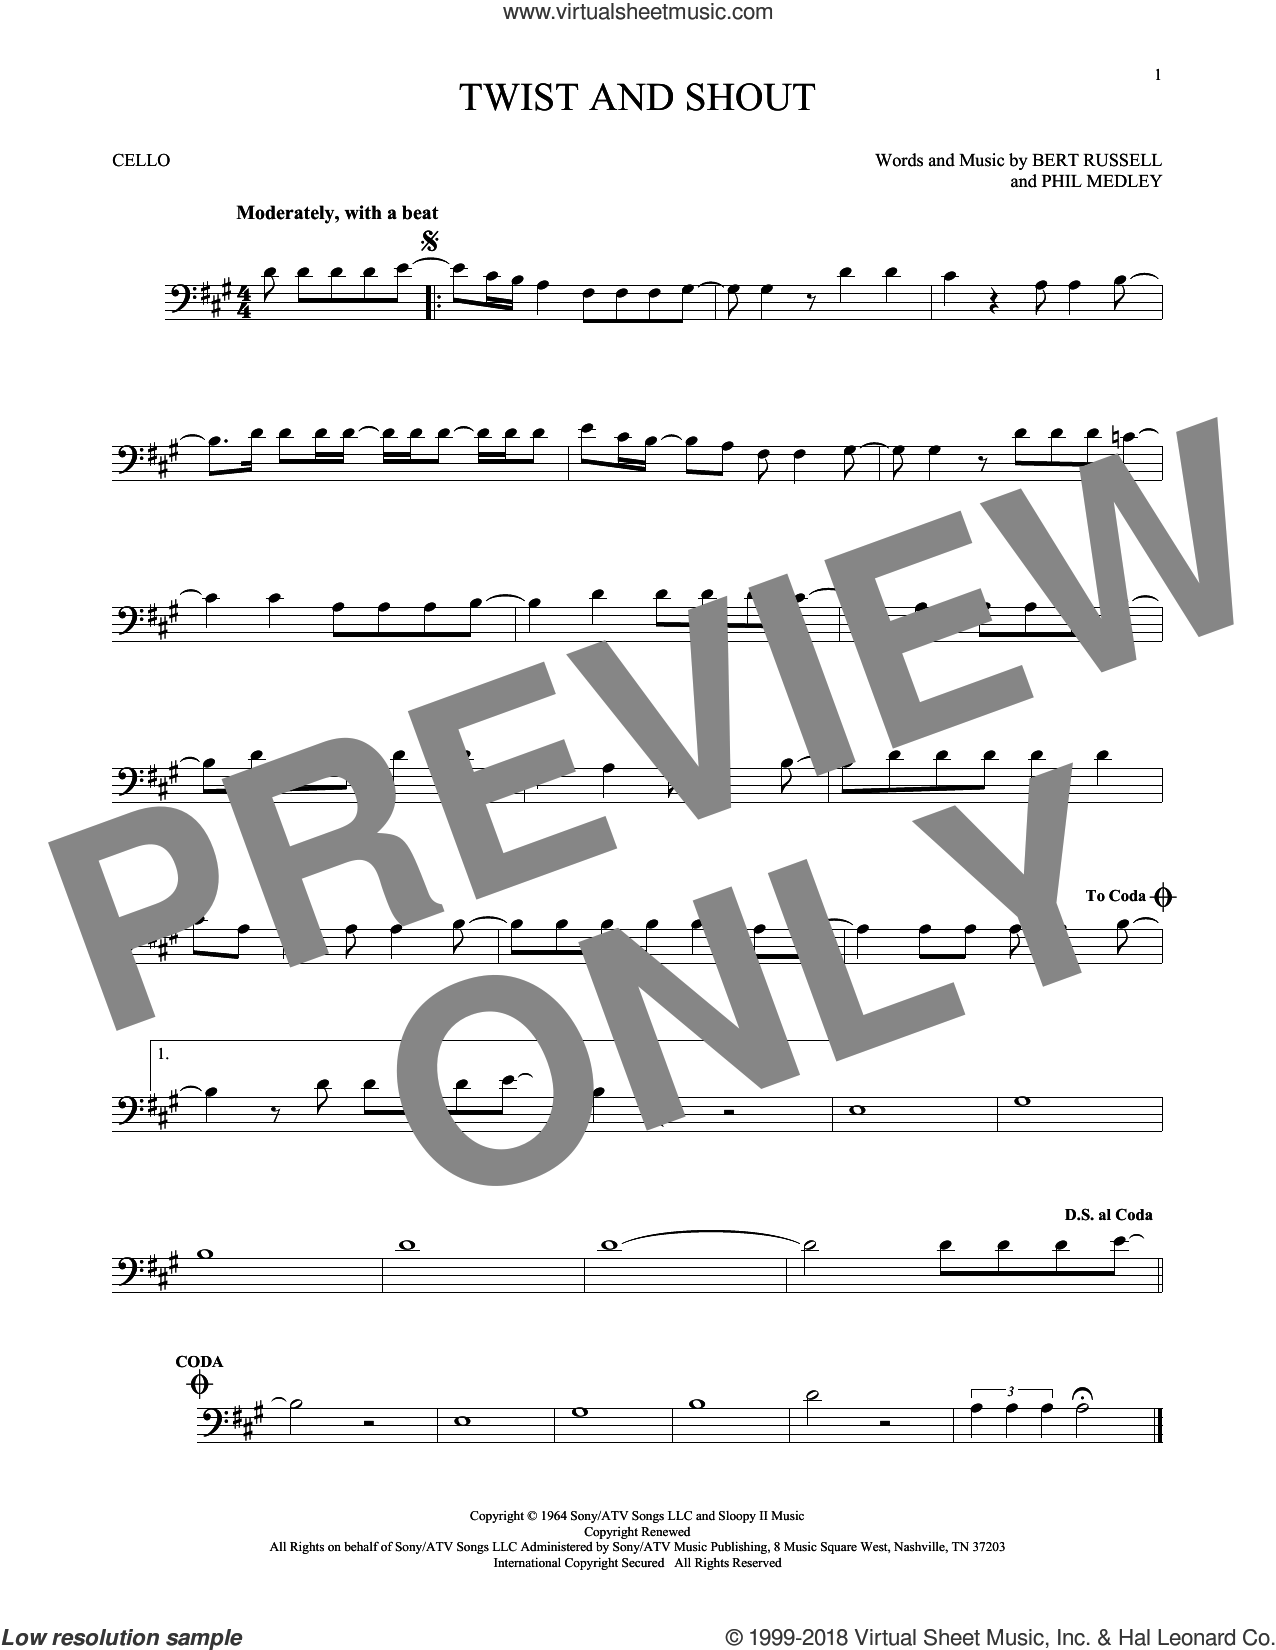 Twist And Shout sheet music for cello solo by The Beatles, The Isley Brothers, Bert Russell and Phil Medley, intermediate skill level